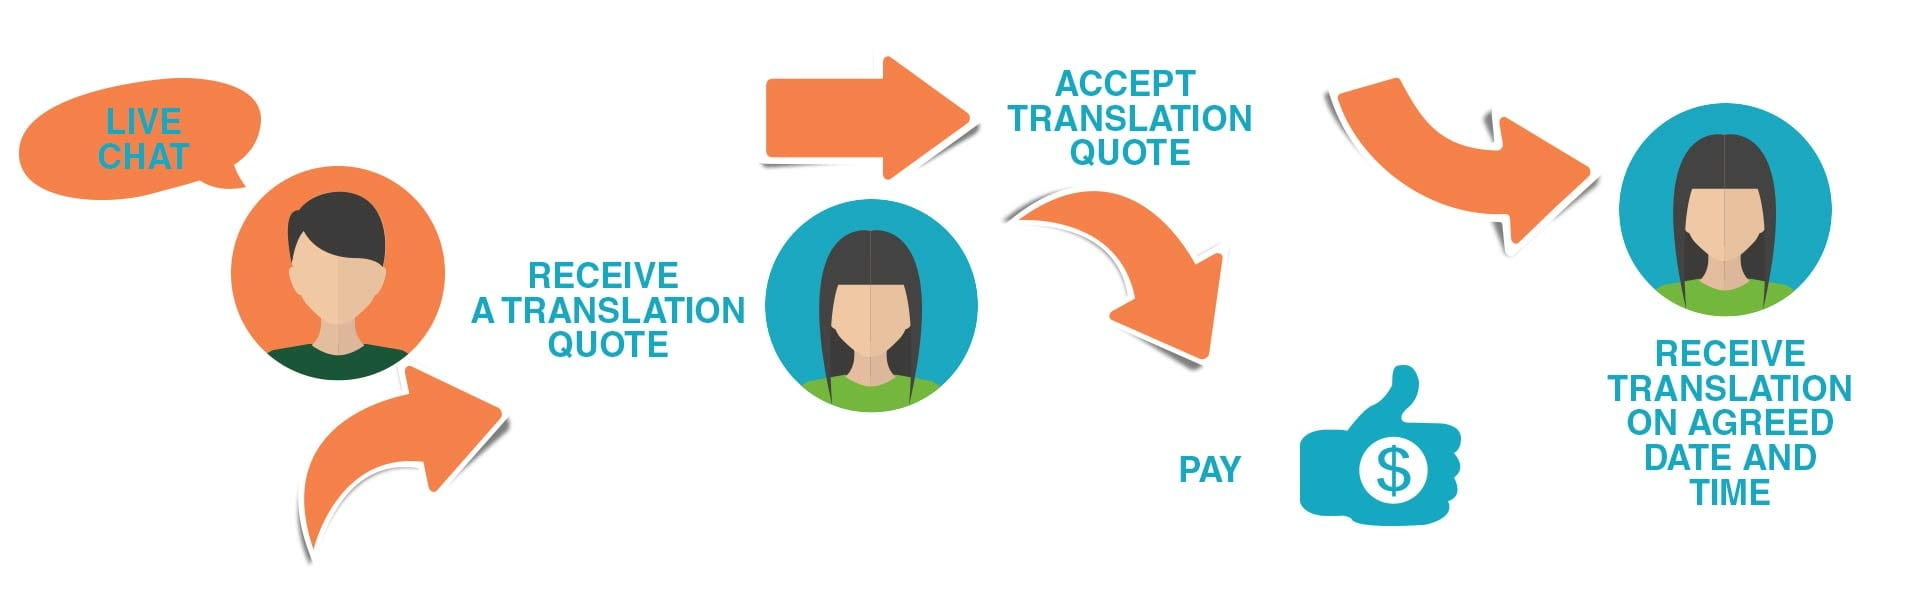 language translation process steps